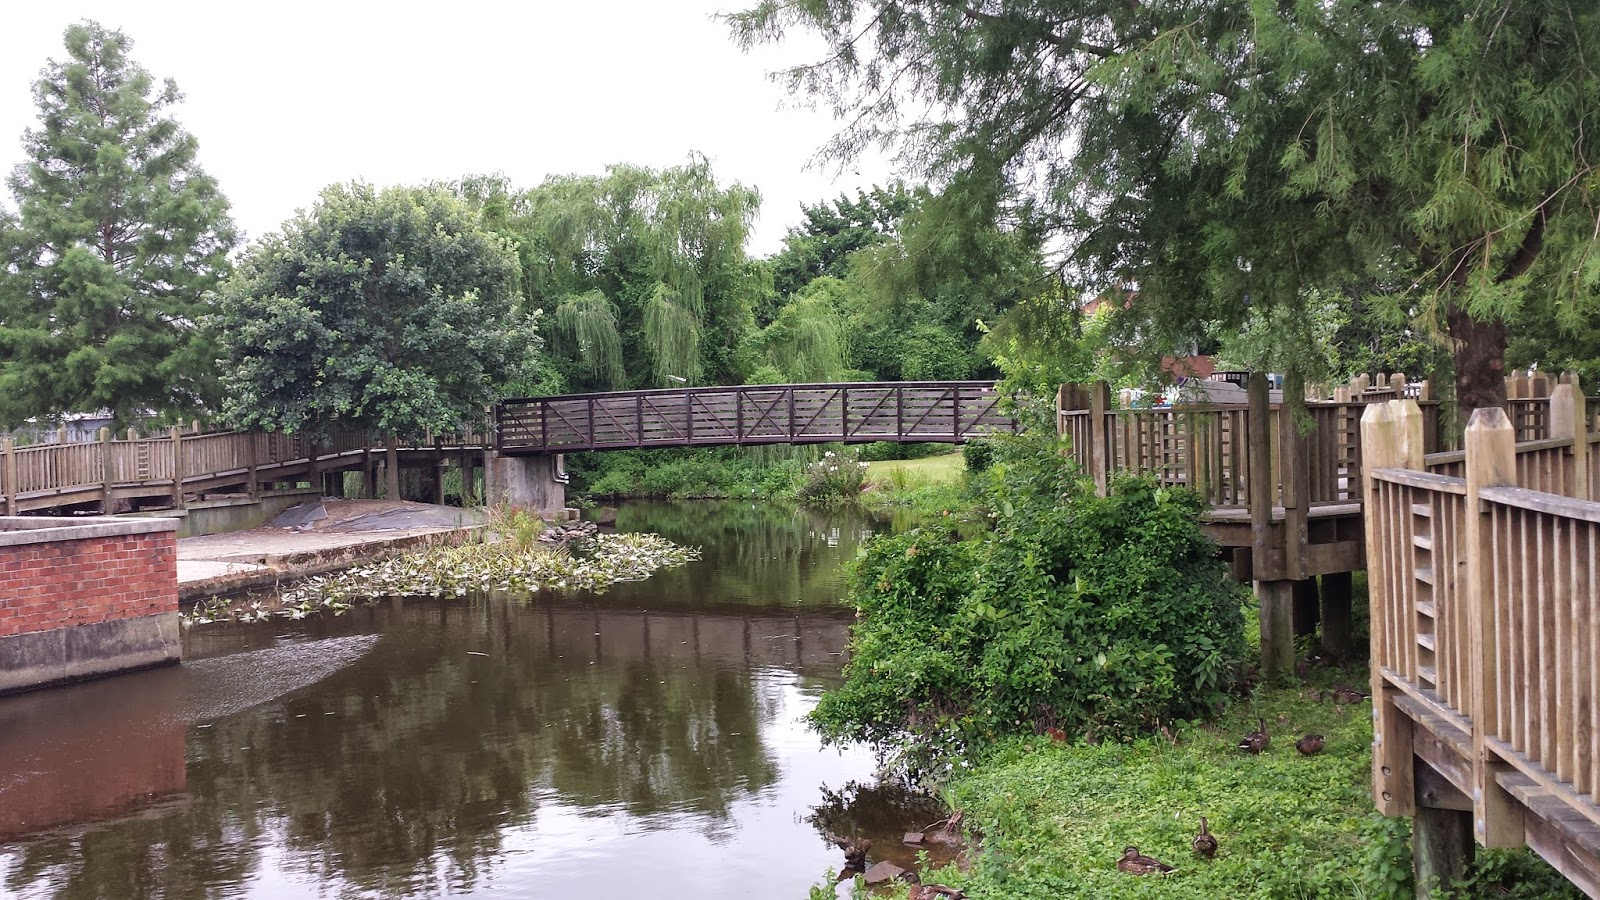 another bridge over the mispillion river and riverwalk